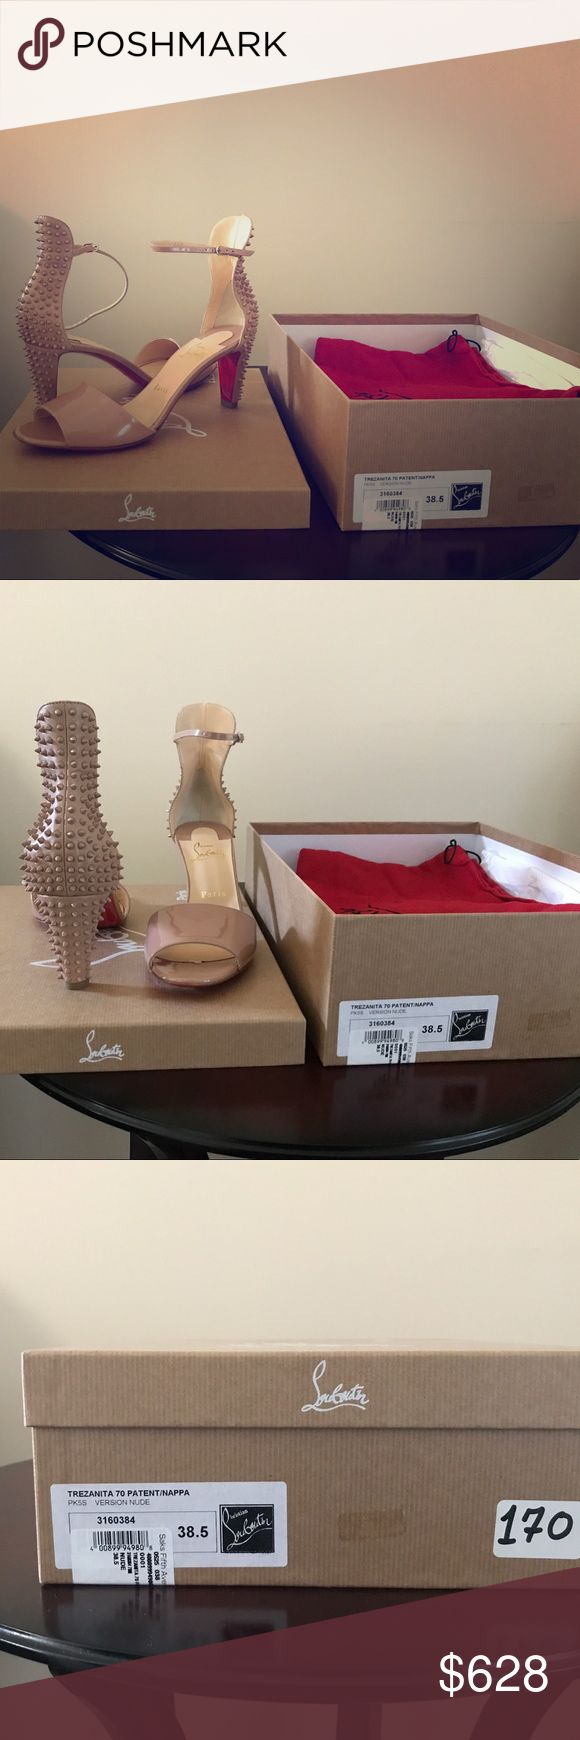 Christian Louboutin Trezanita 79 Patent/Nappa Brand New Christian Louboutin Trezanita 79 Patent/Nappa 38.5 with sole protectors already out on both shoes. Christian Louboutin Shoes Sandals